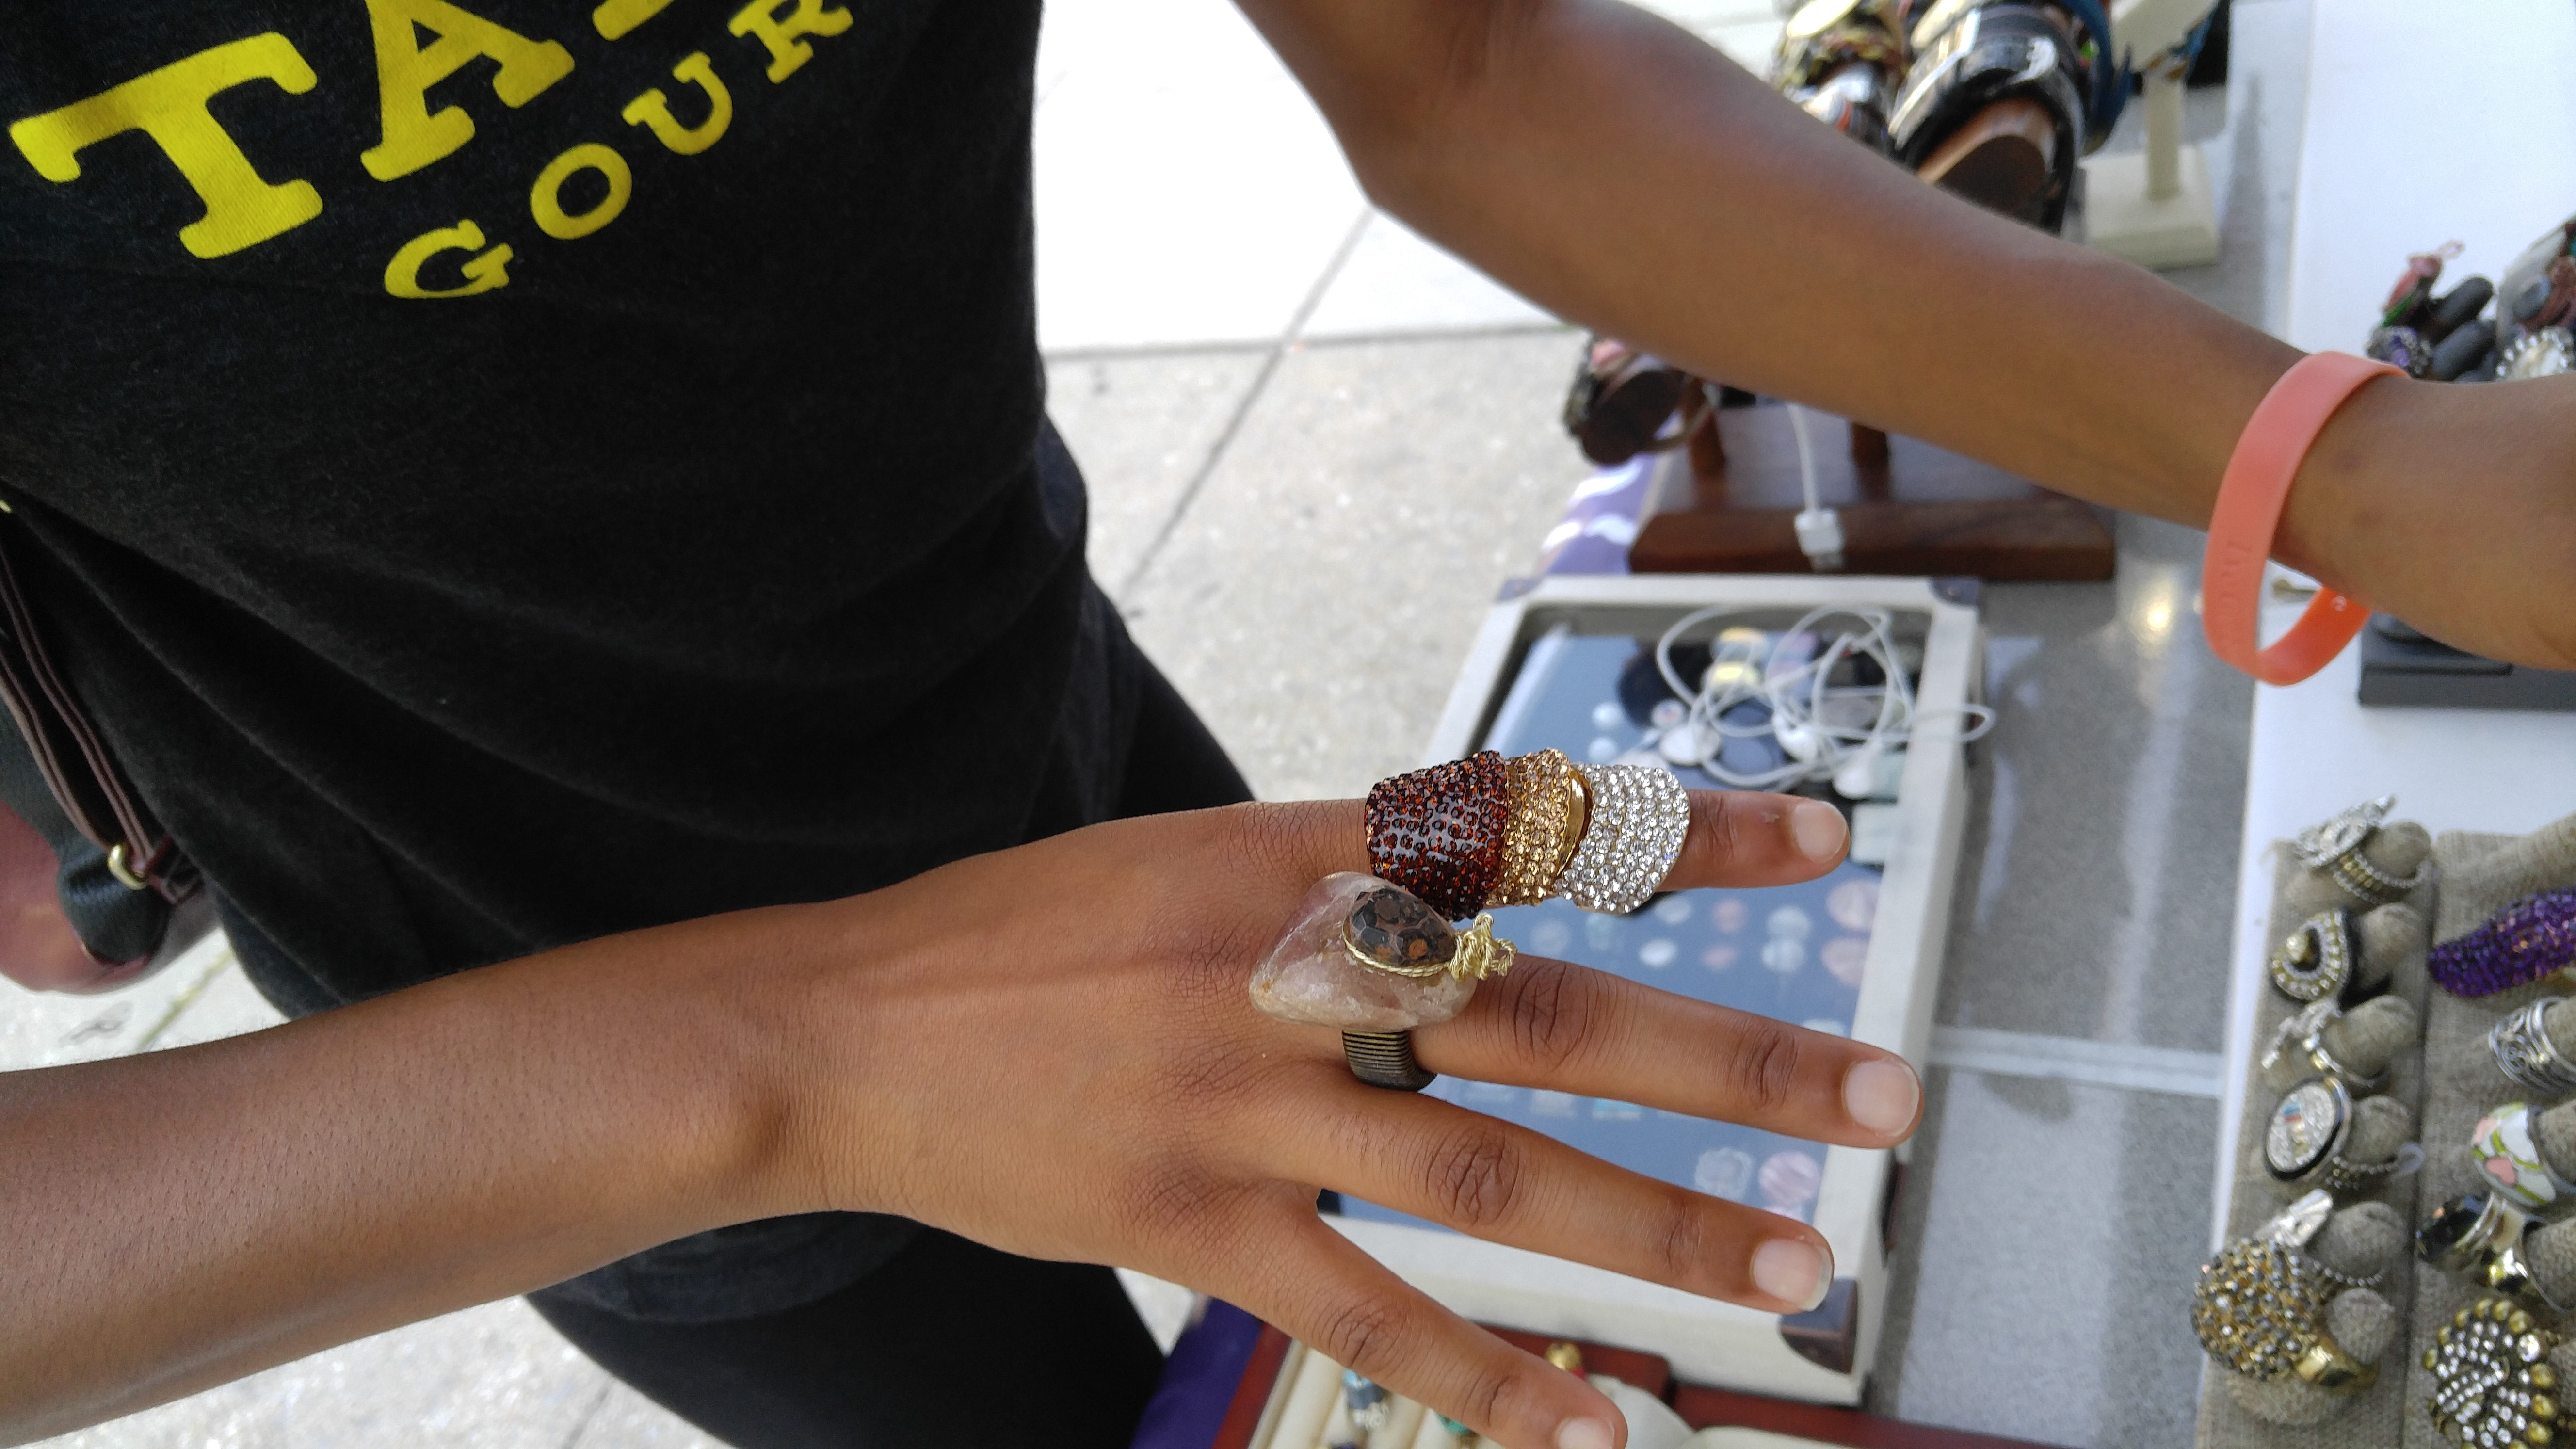 Customer trys on rings at Nikus Booth, Sept. 2016